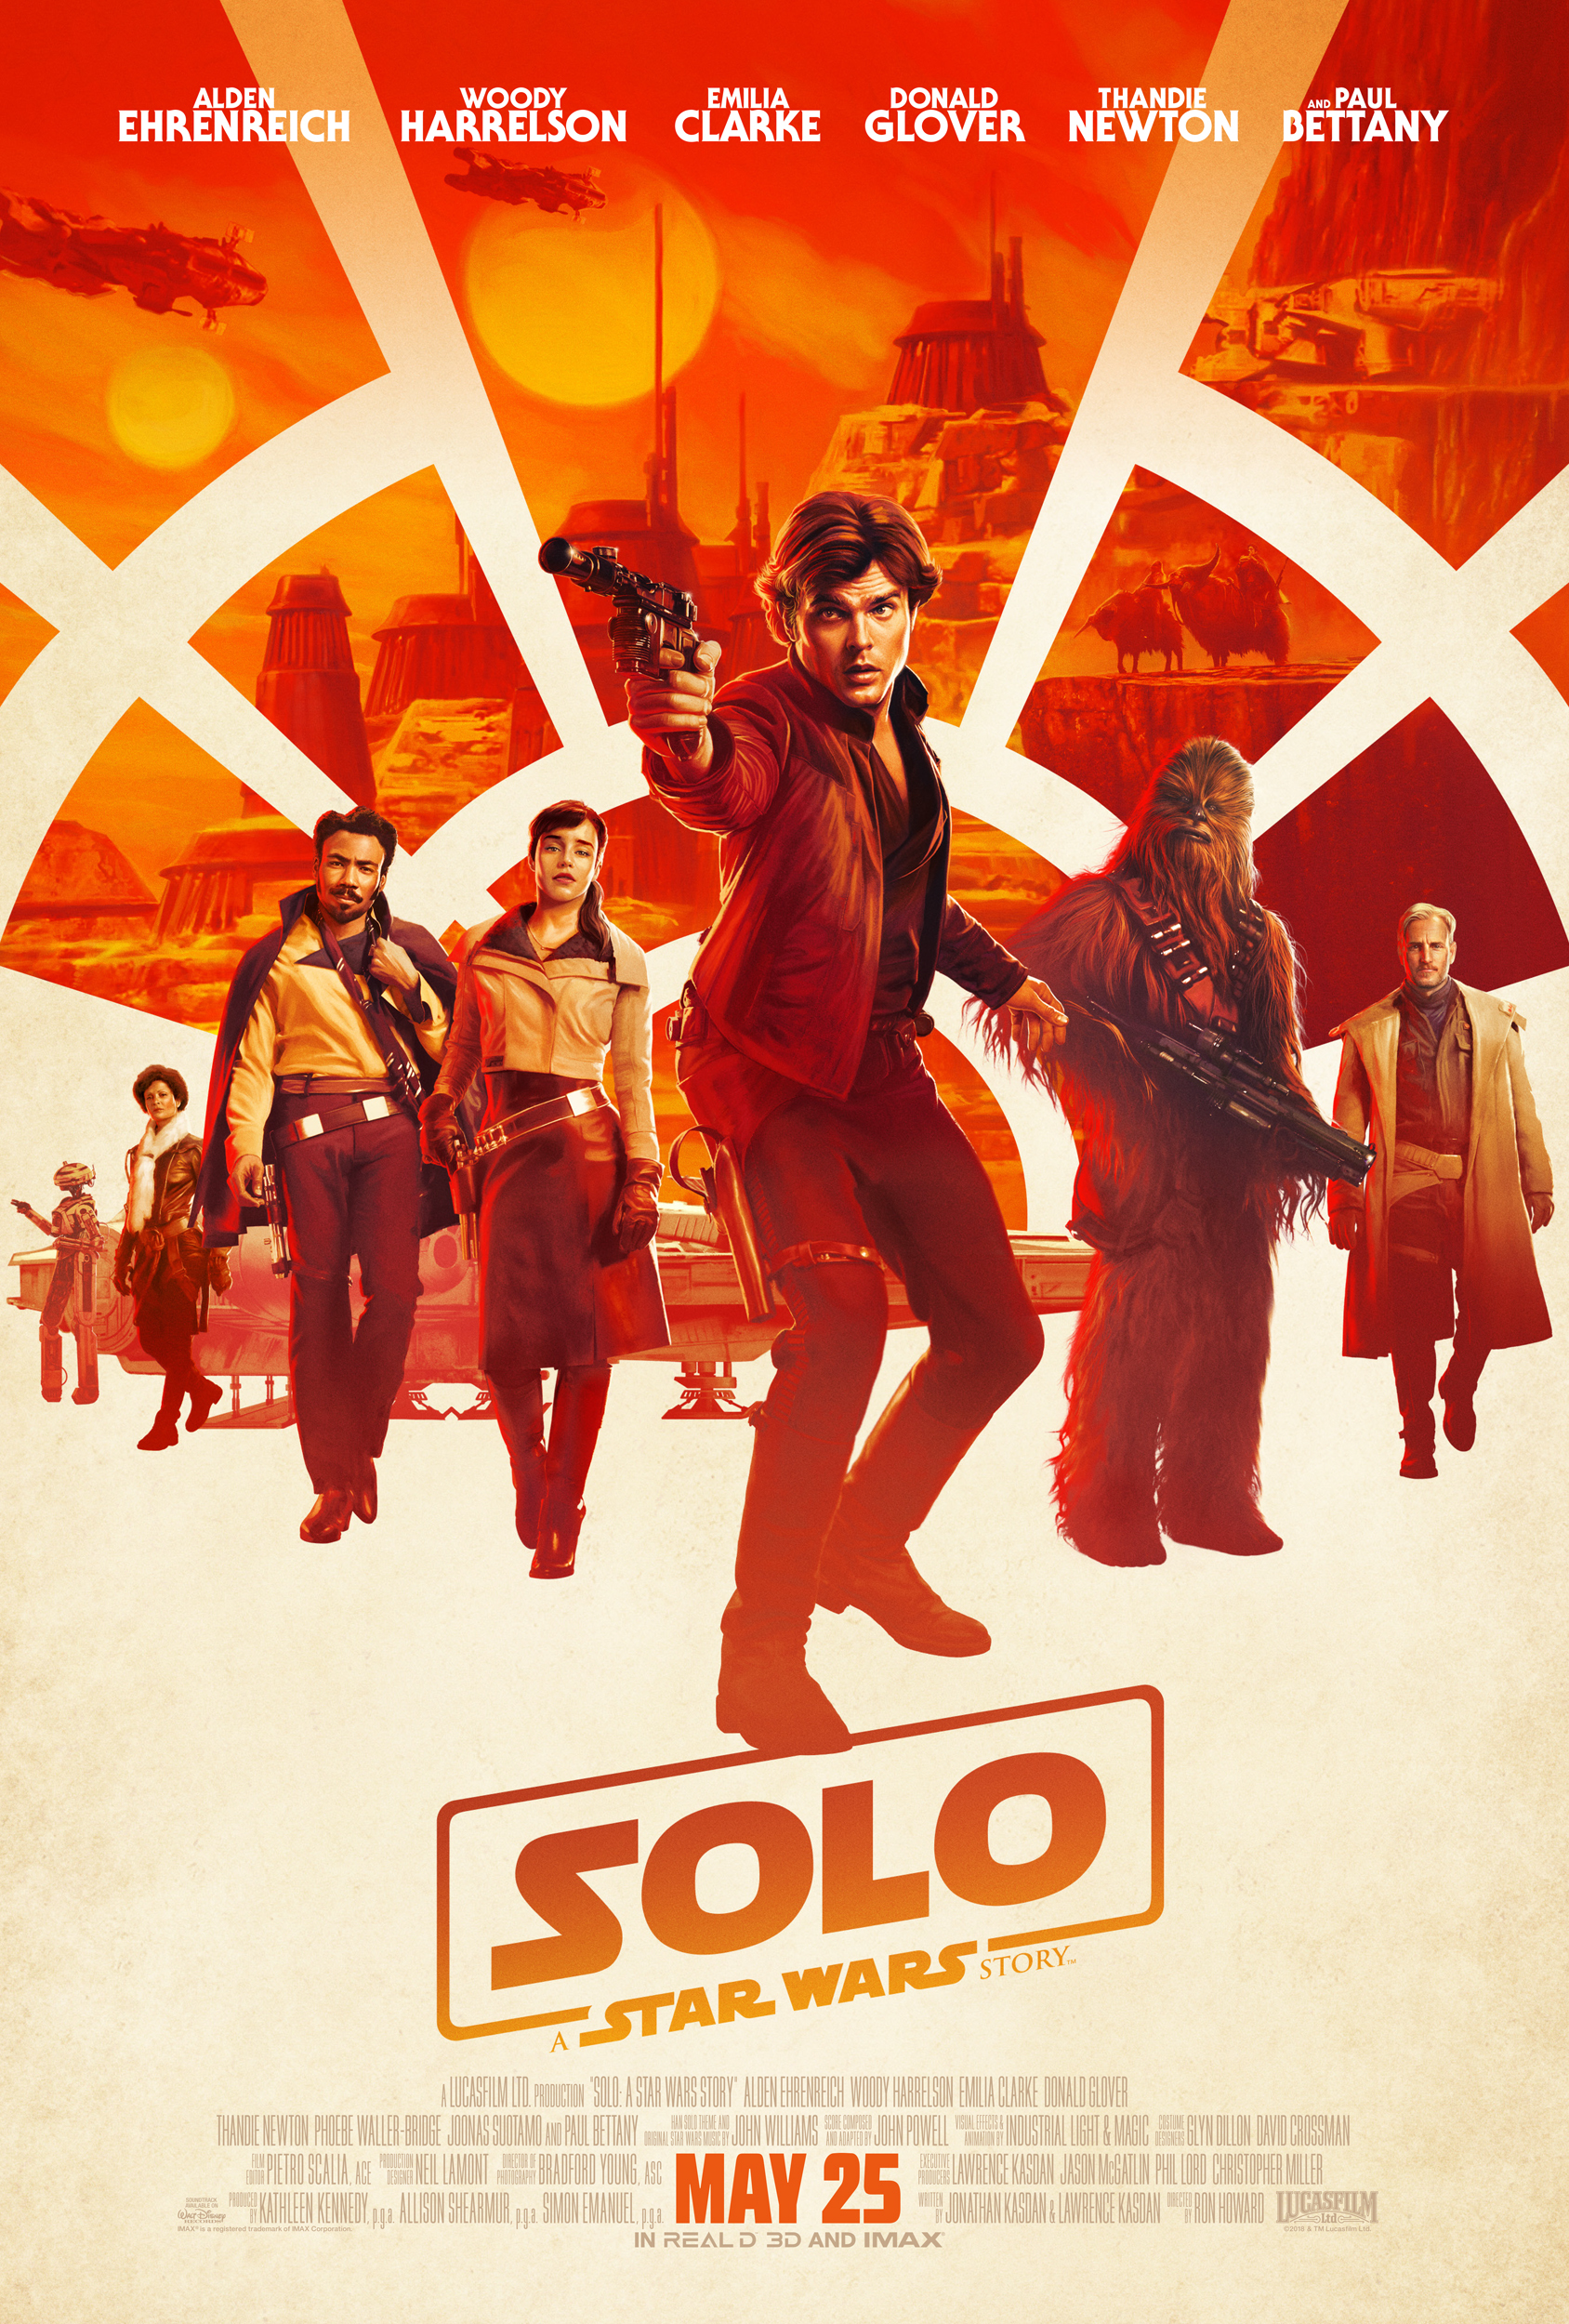 Solo: A Star Wars Story   (2018) dir. Ron Howard Rated: PG-13 image: ©2018  Walt Disney Studios Motion Pictures